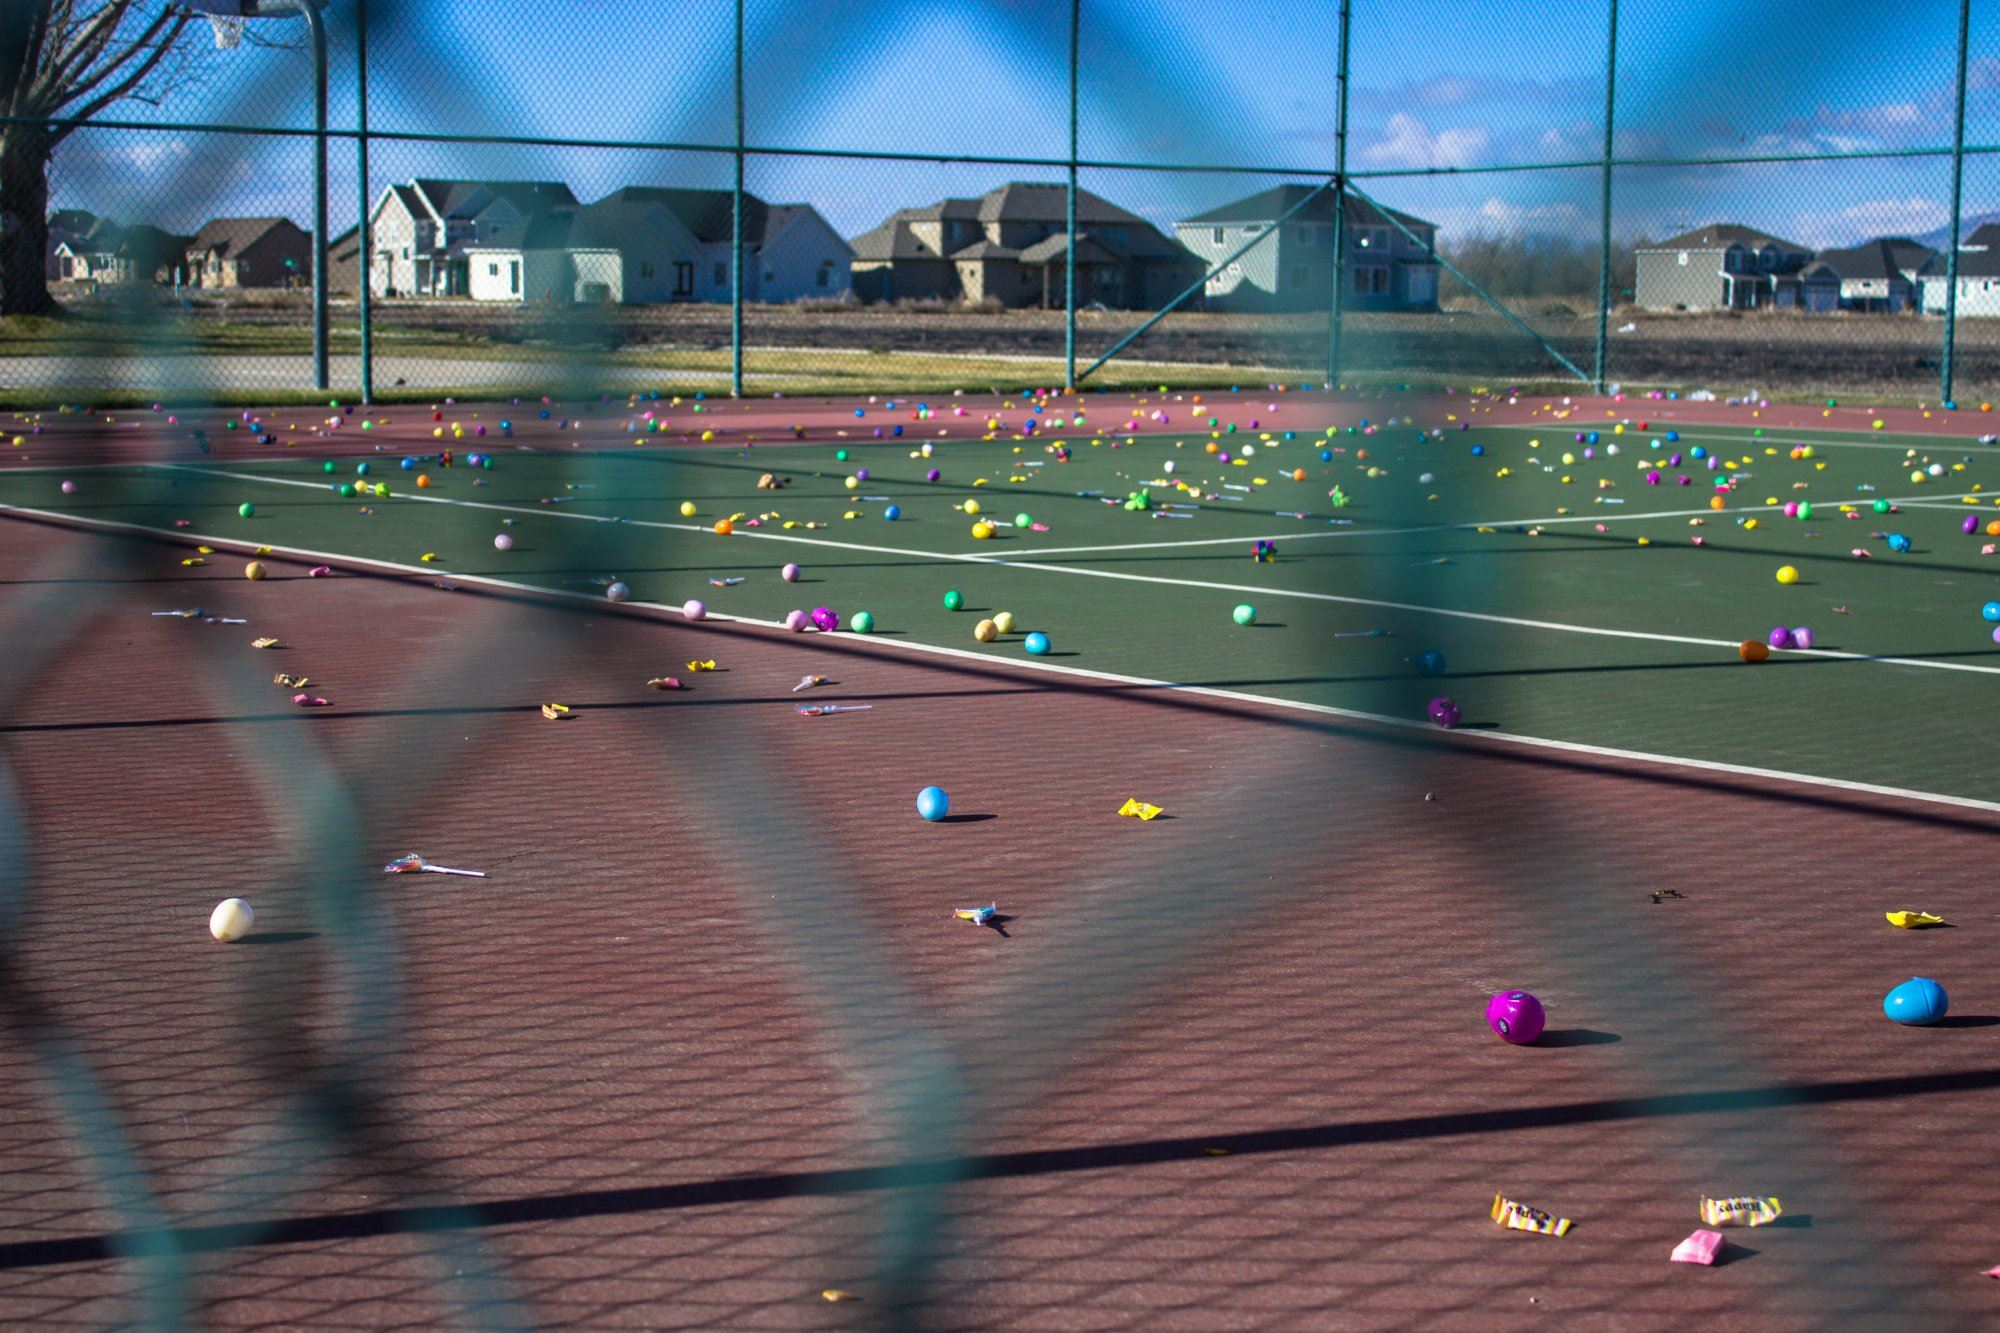 Easter eggs on a tennis court.